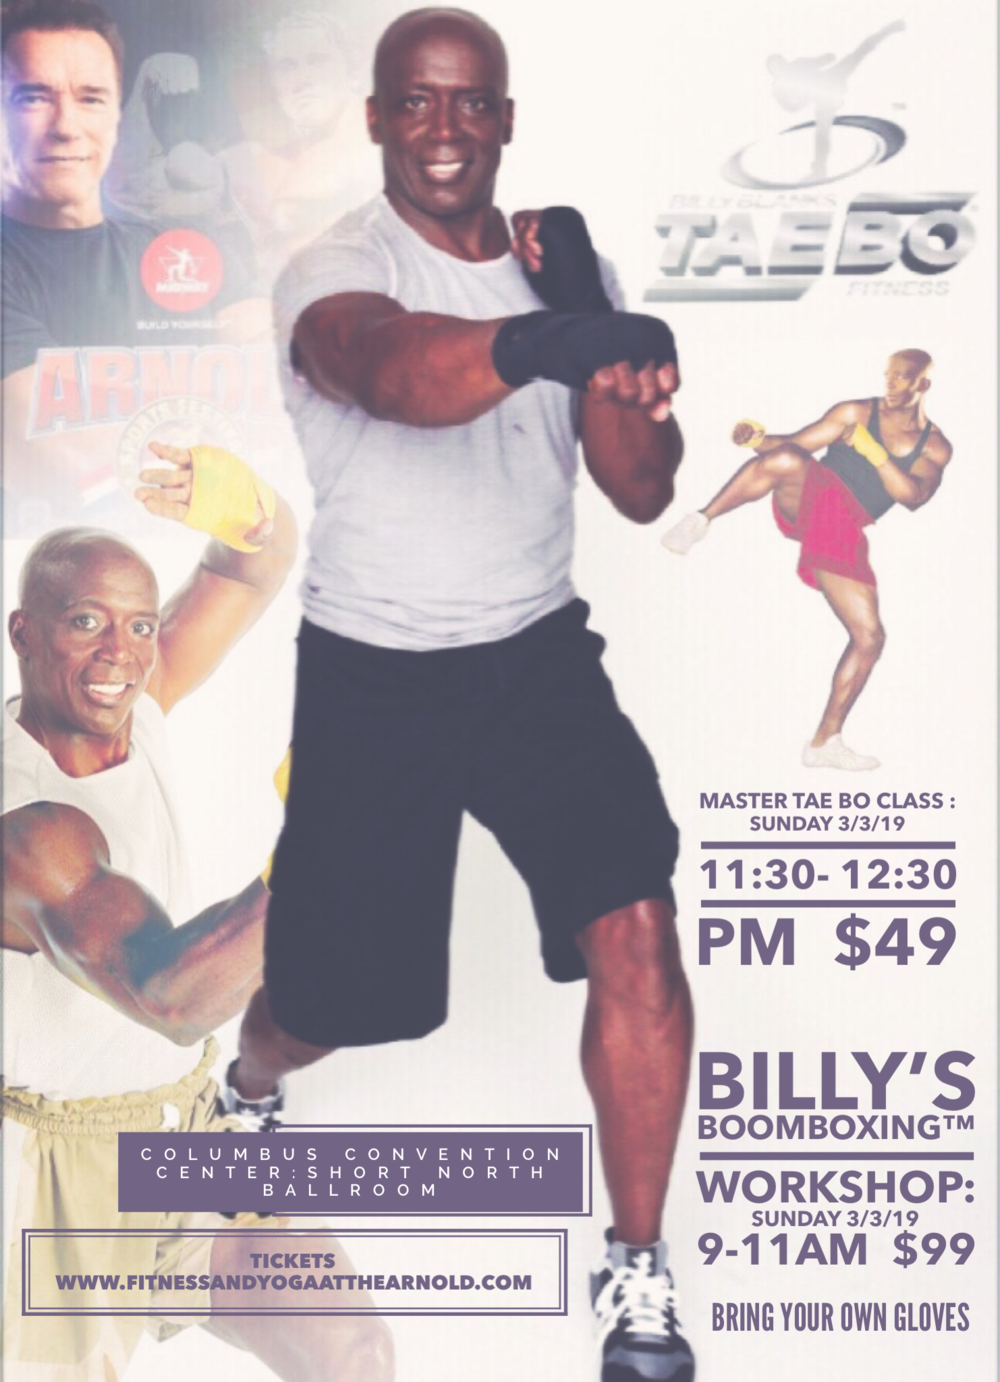 This workshop will be one you don't want to miss! - Billy is a legend in the Fitness Industry